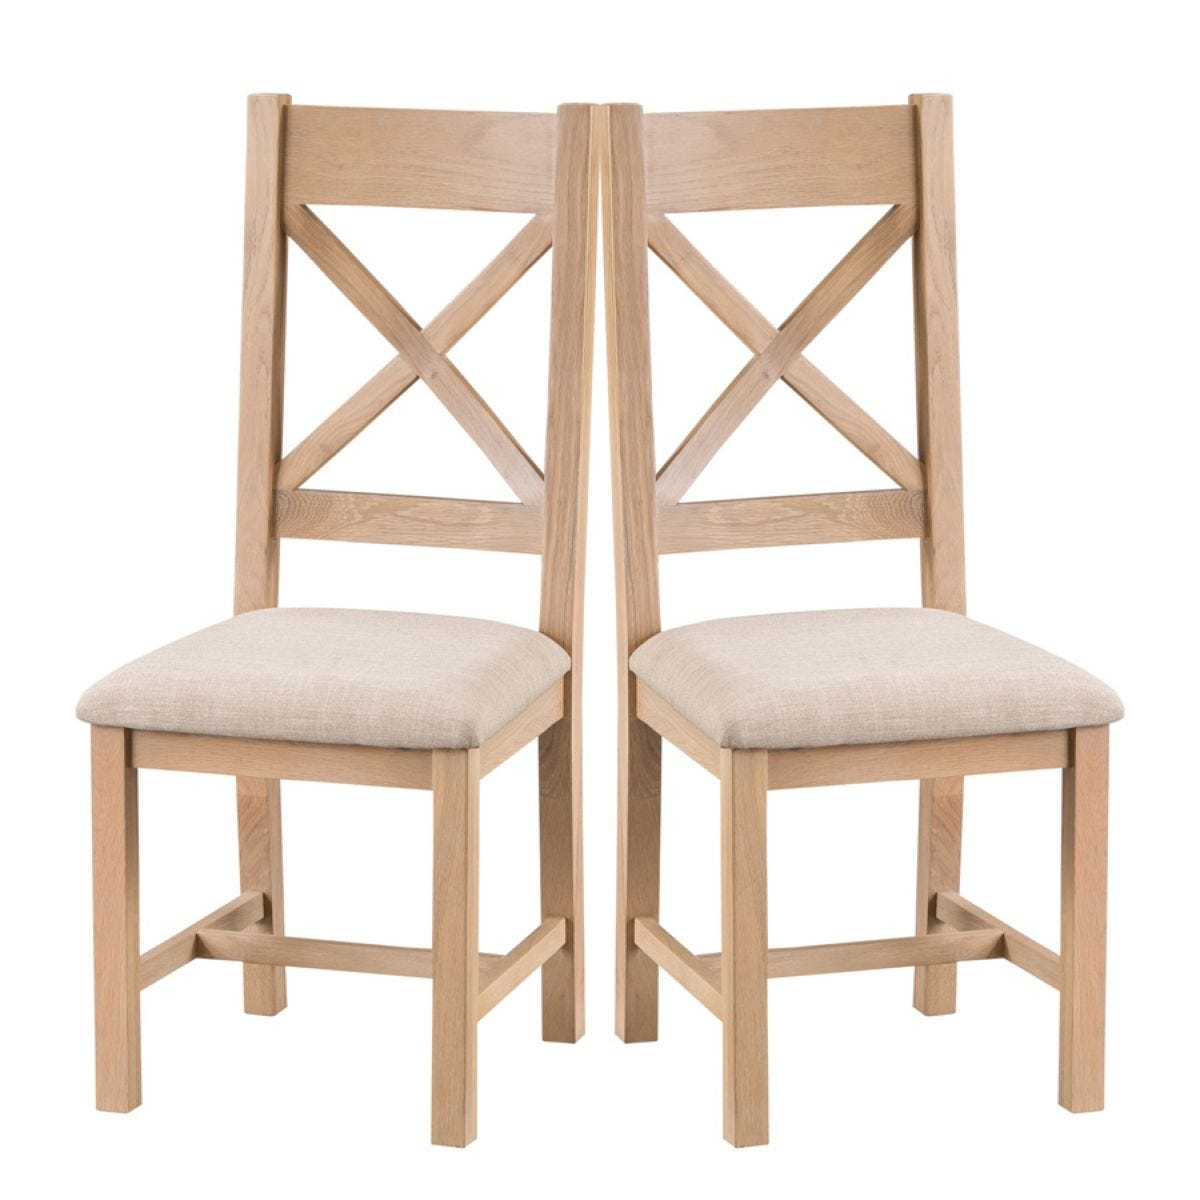 Wisborough Ready Assembled Pair of Cross Back Oak Chairs with Padded Seats